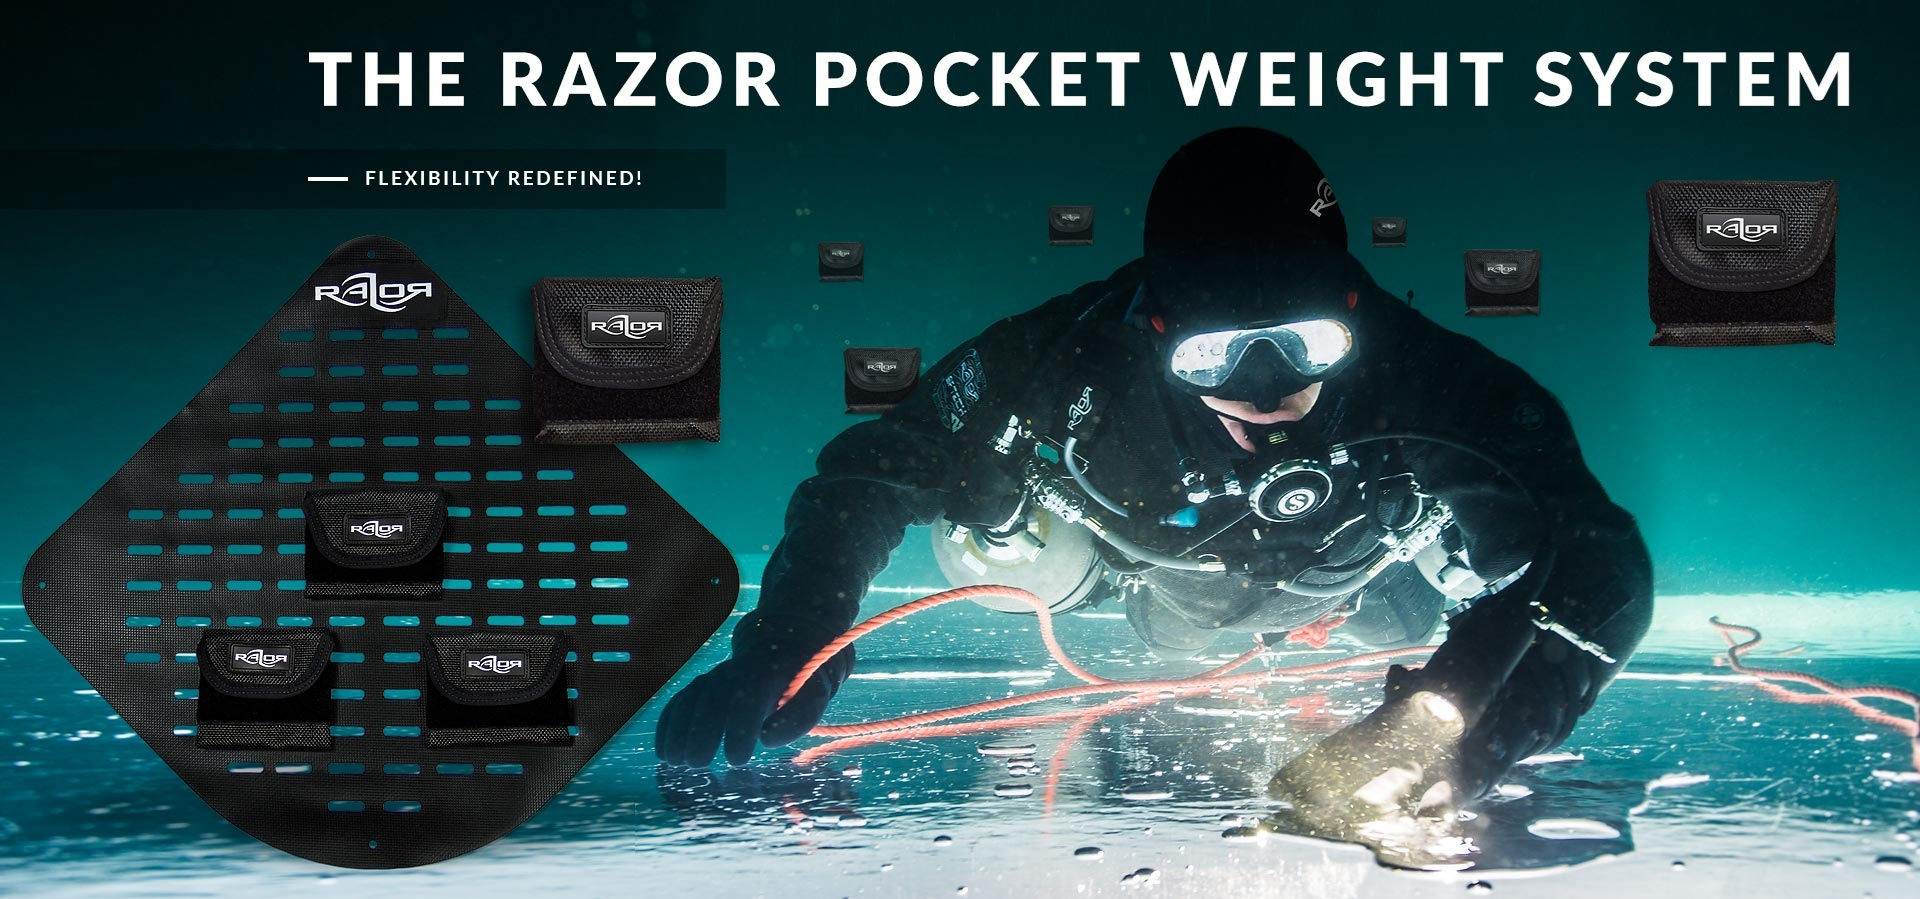 The Razor pocket weight system